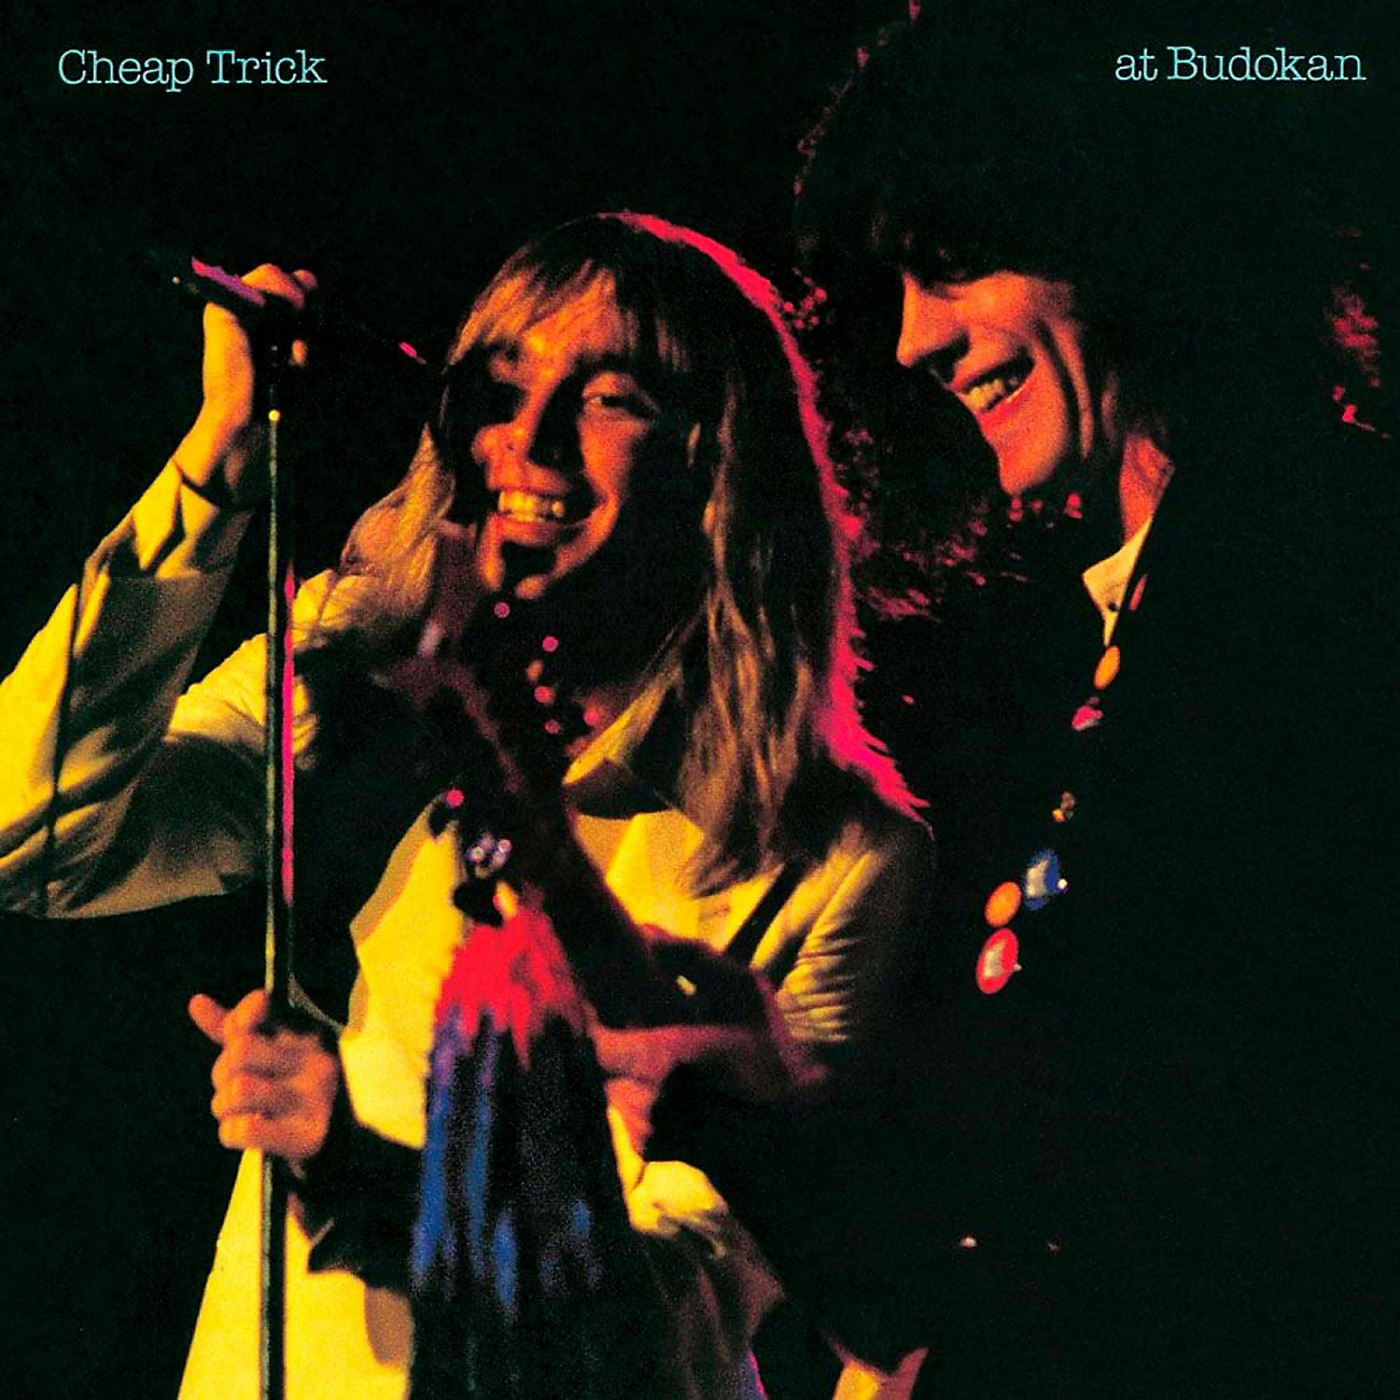 The Orchard Cheap Trick - At Budokan LP thumbnail